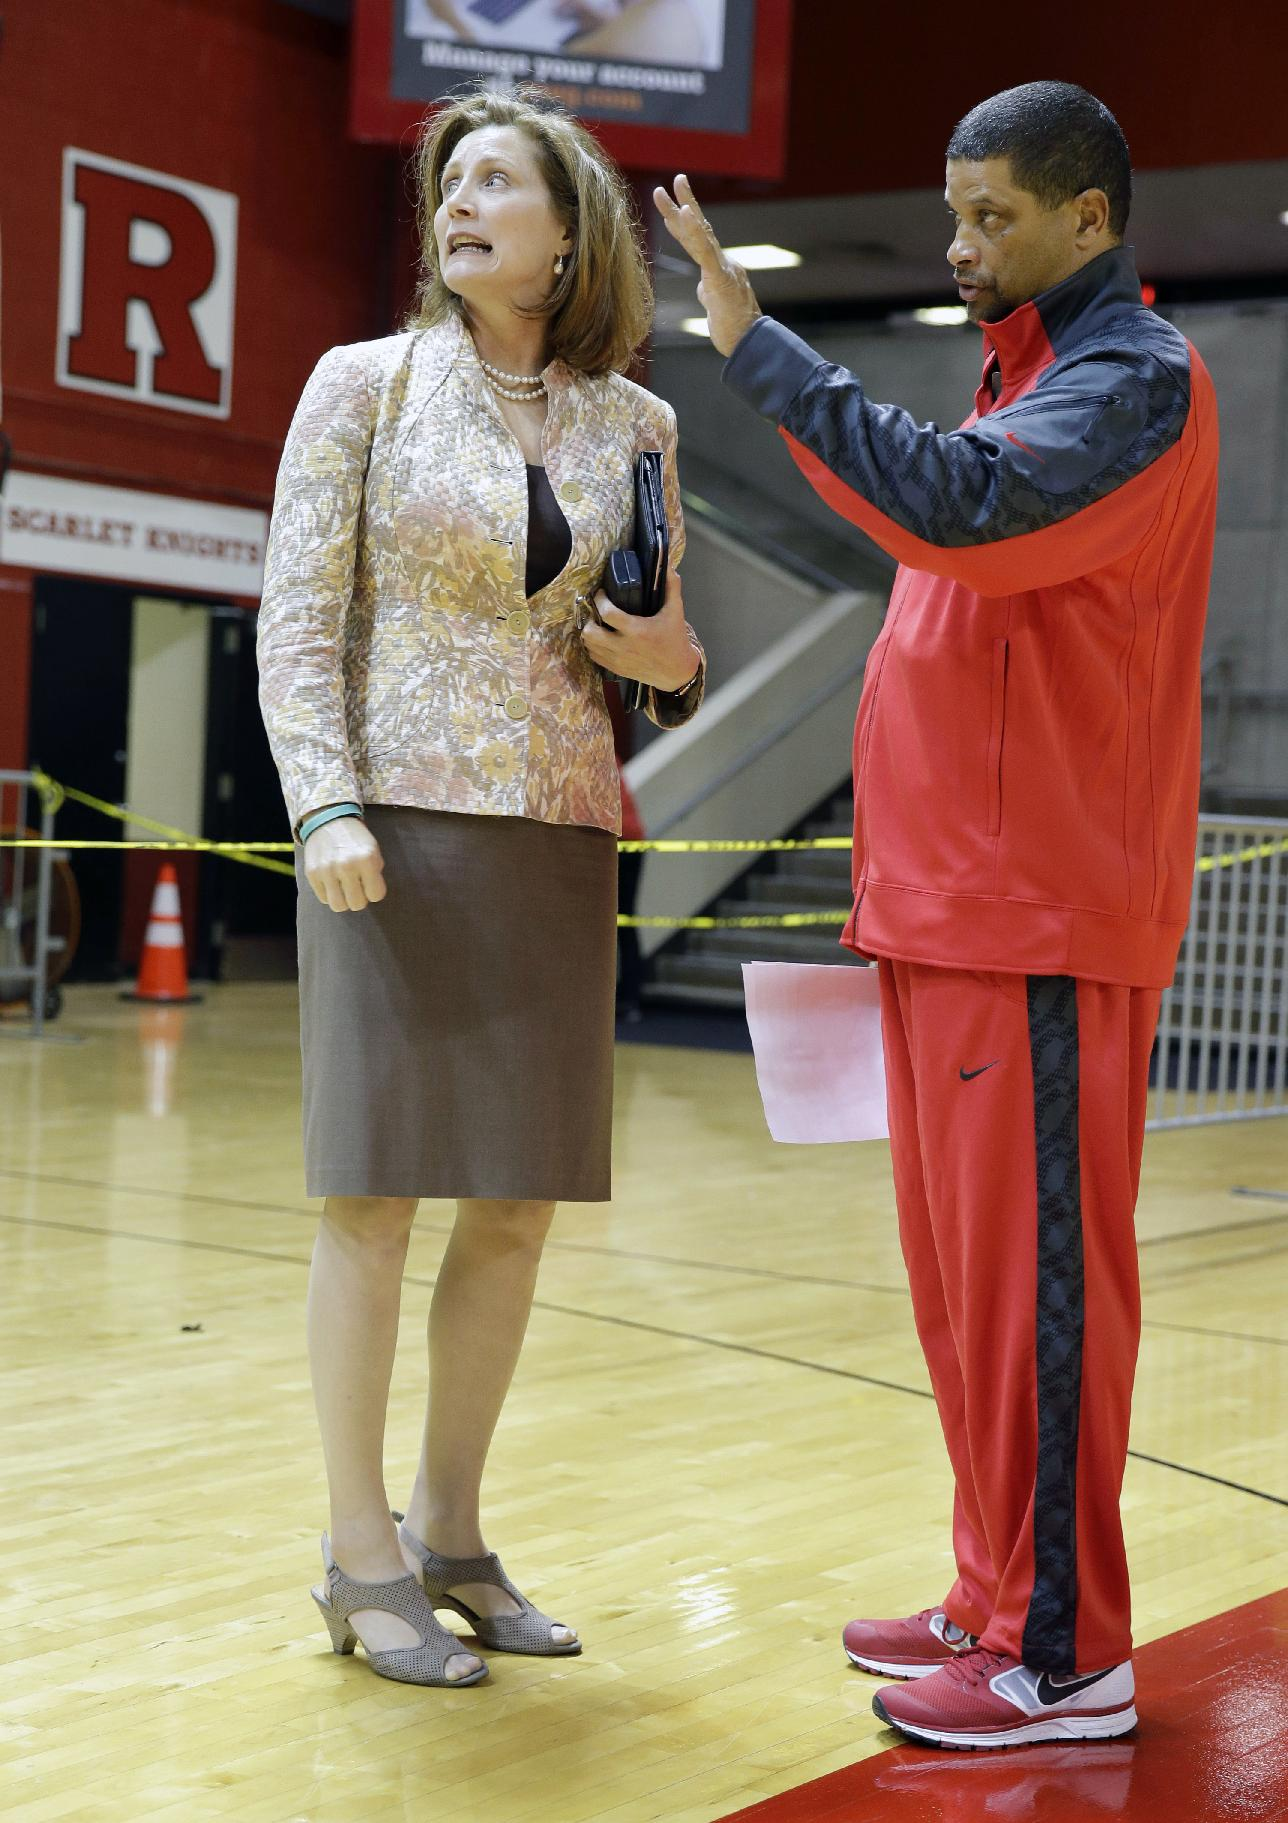 Rutgers University athletic director Julie Hermann, left listens as men's basketball head coach Eddie Jordan talks about renovations at the Rutgers Athletic Center in Piscataway, N.J., Tuesday, Oct. 22, 2013. Jordan was named head coach in April and Hermann athletic director in May, as the school sought to move forward from a scandal that forced the firing of coach Mike Rice and the resignation of athletic director Tim Pernetti